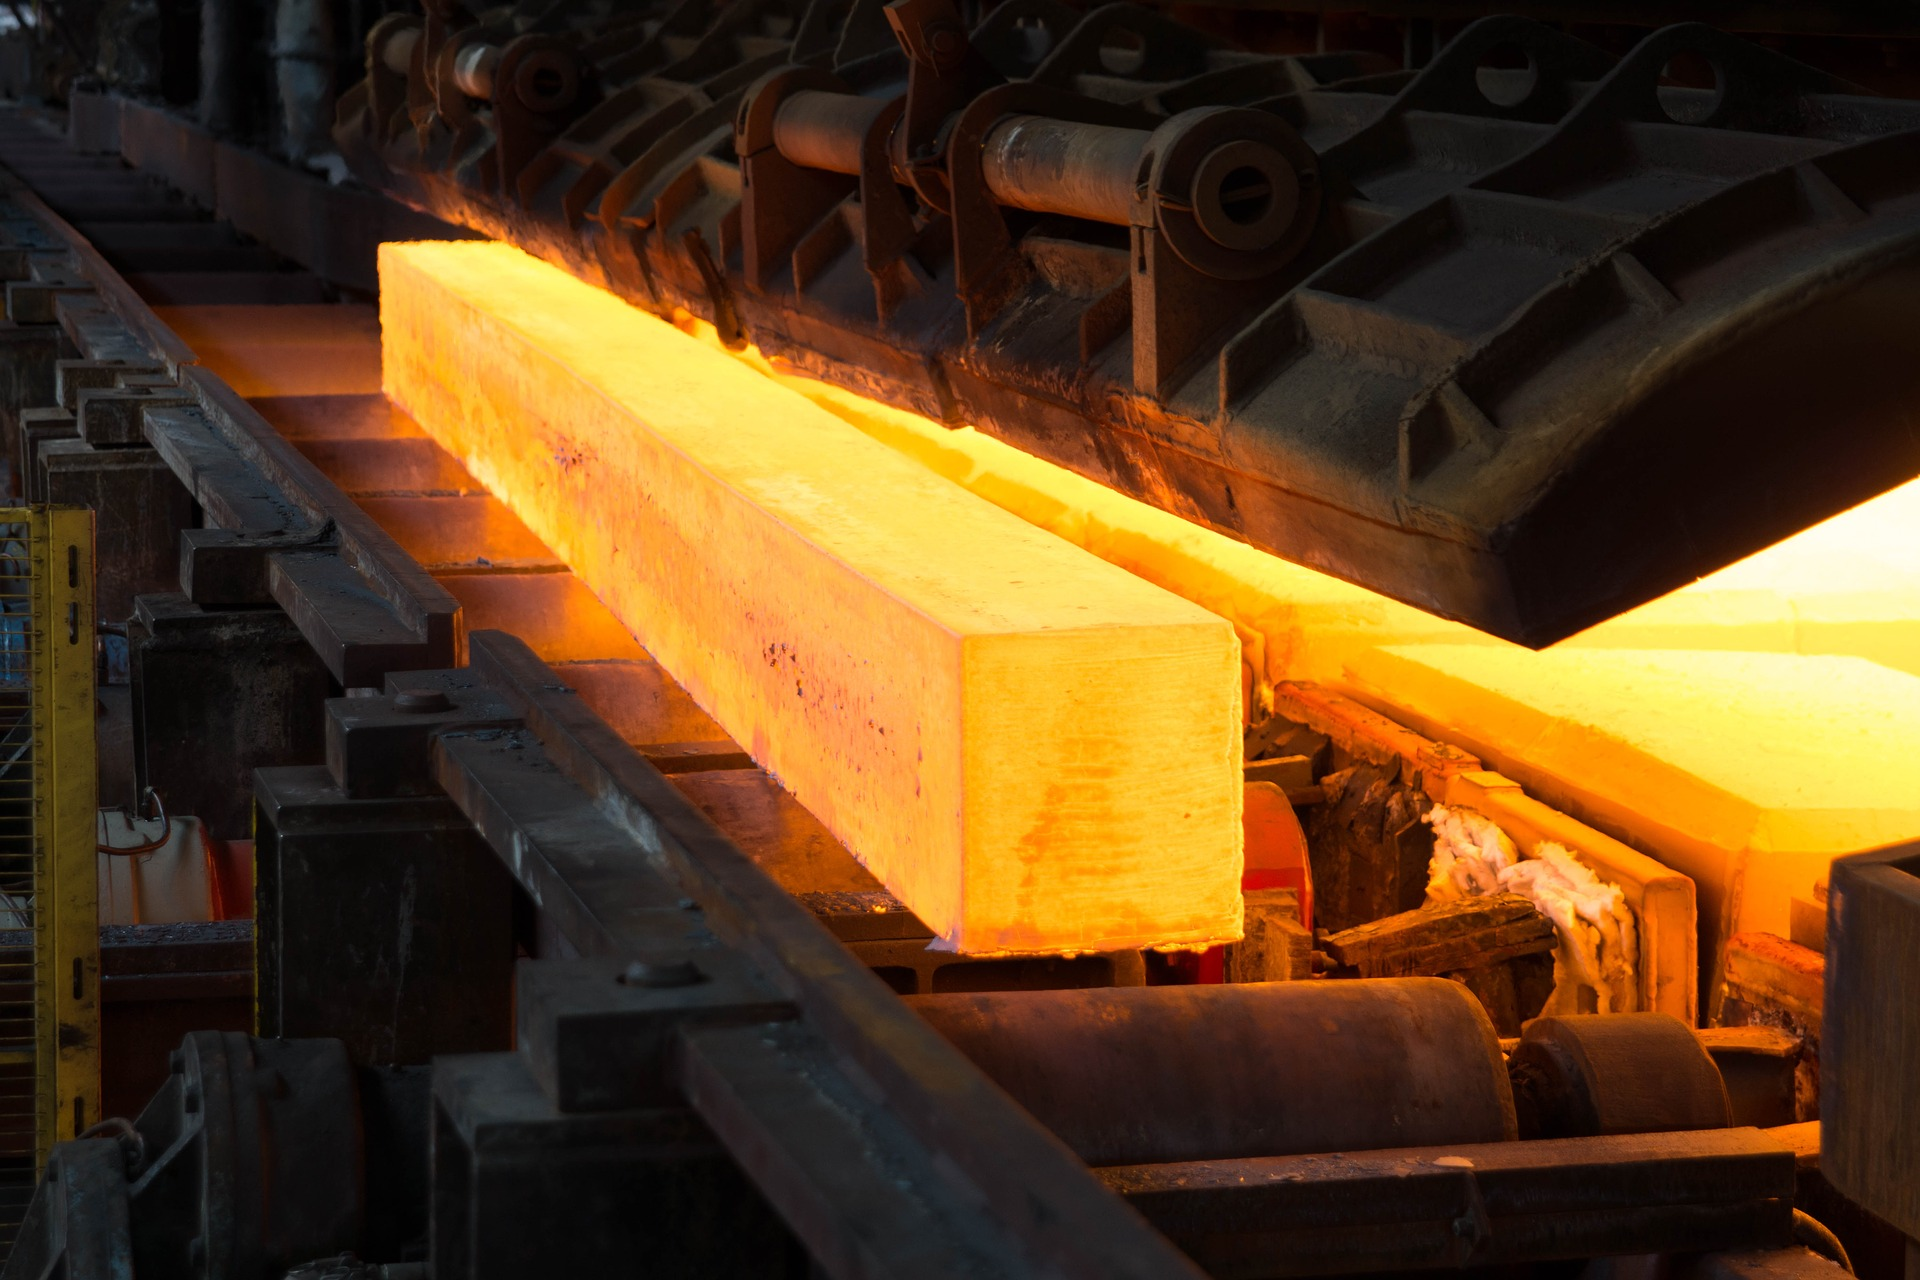 Chinese steel exports recommence year-on-year growth